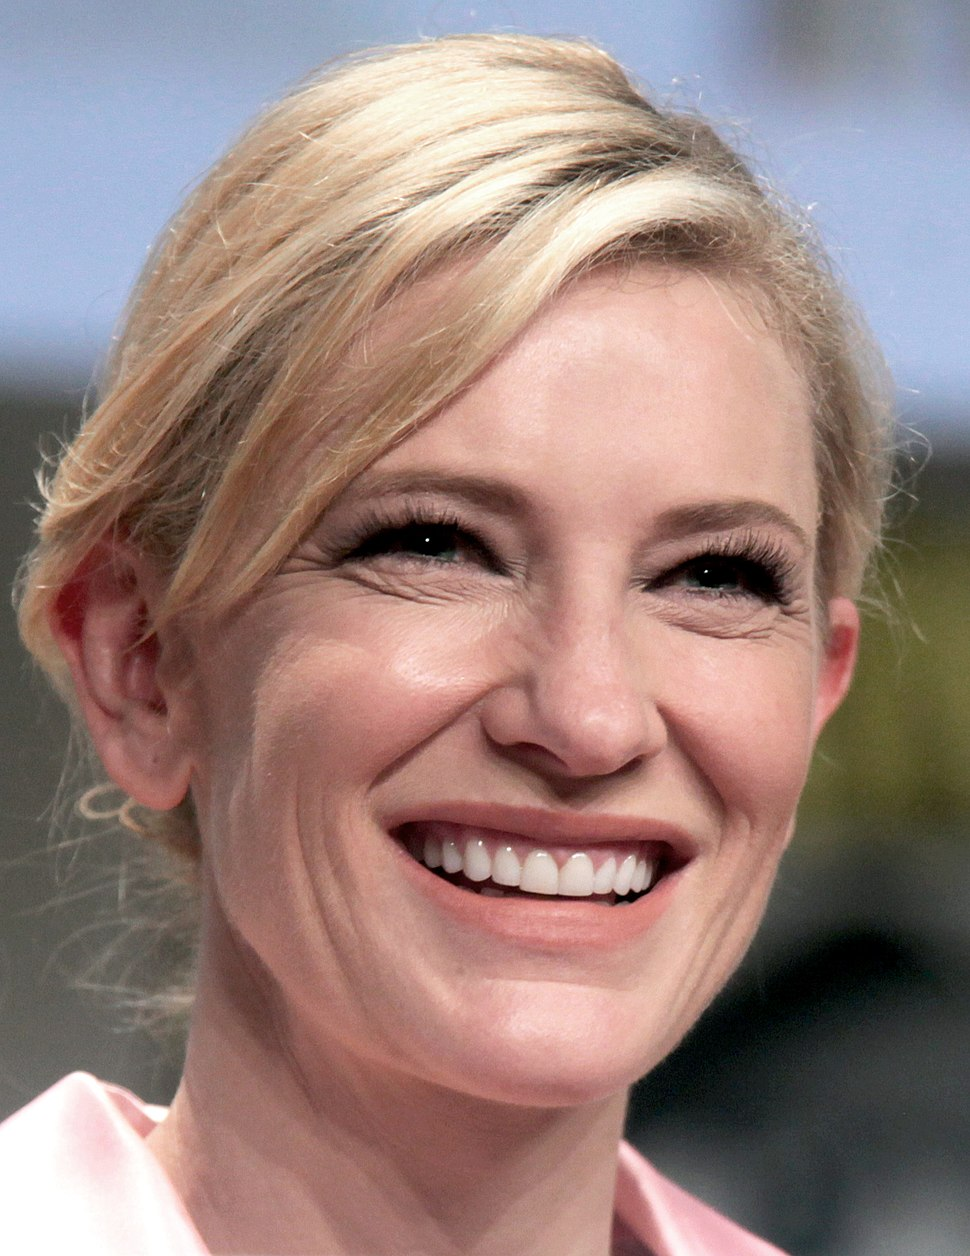 Cate Blanchett SDCC 2014 (cropped)